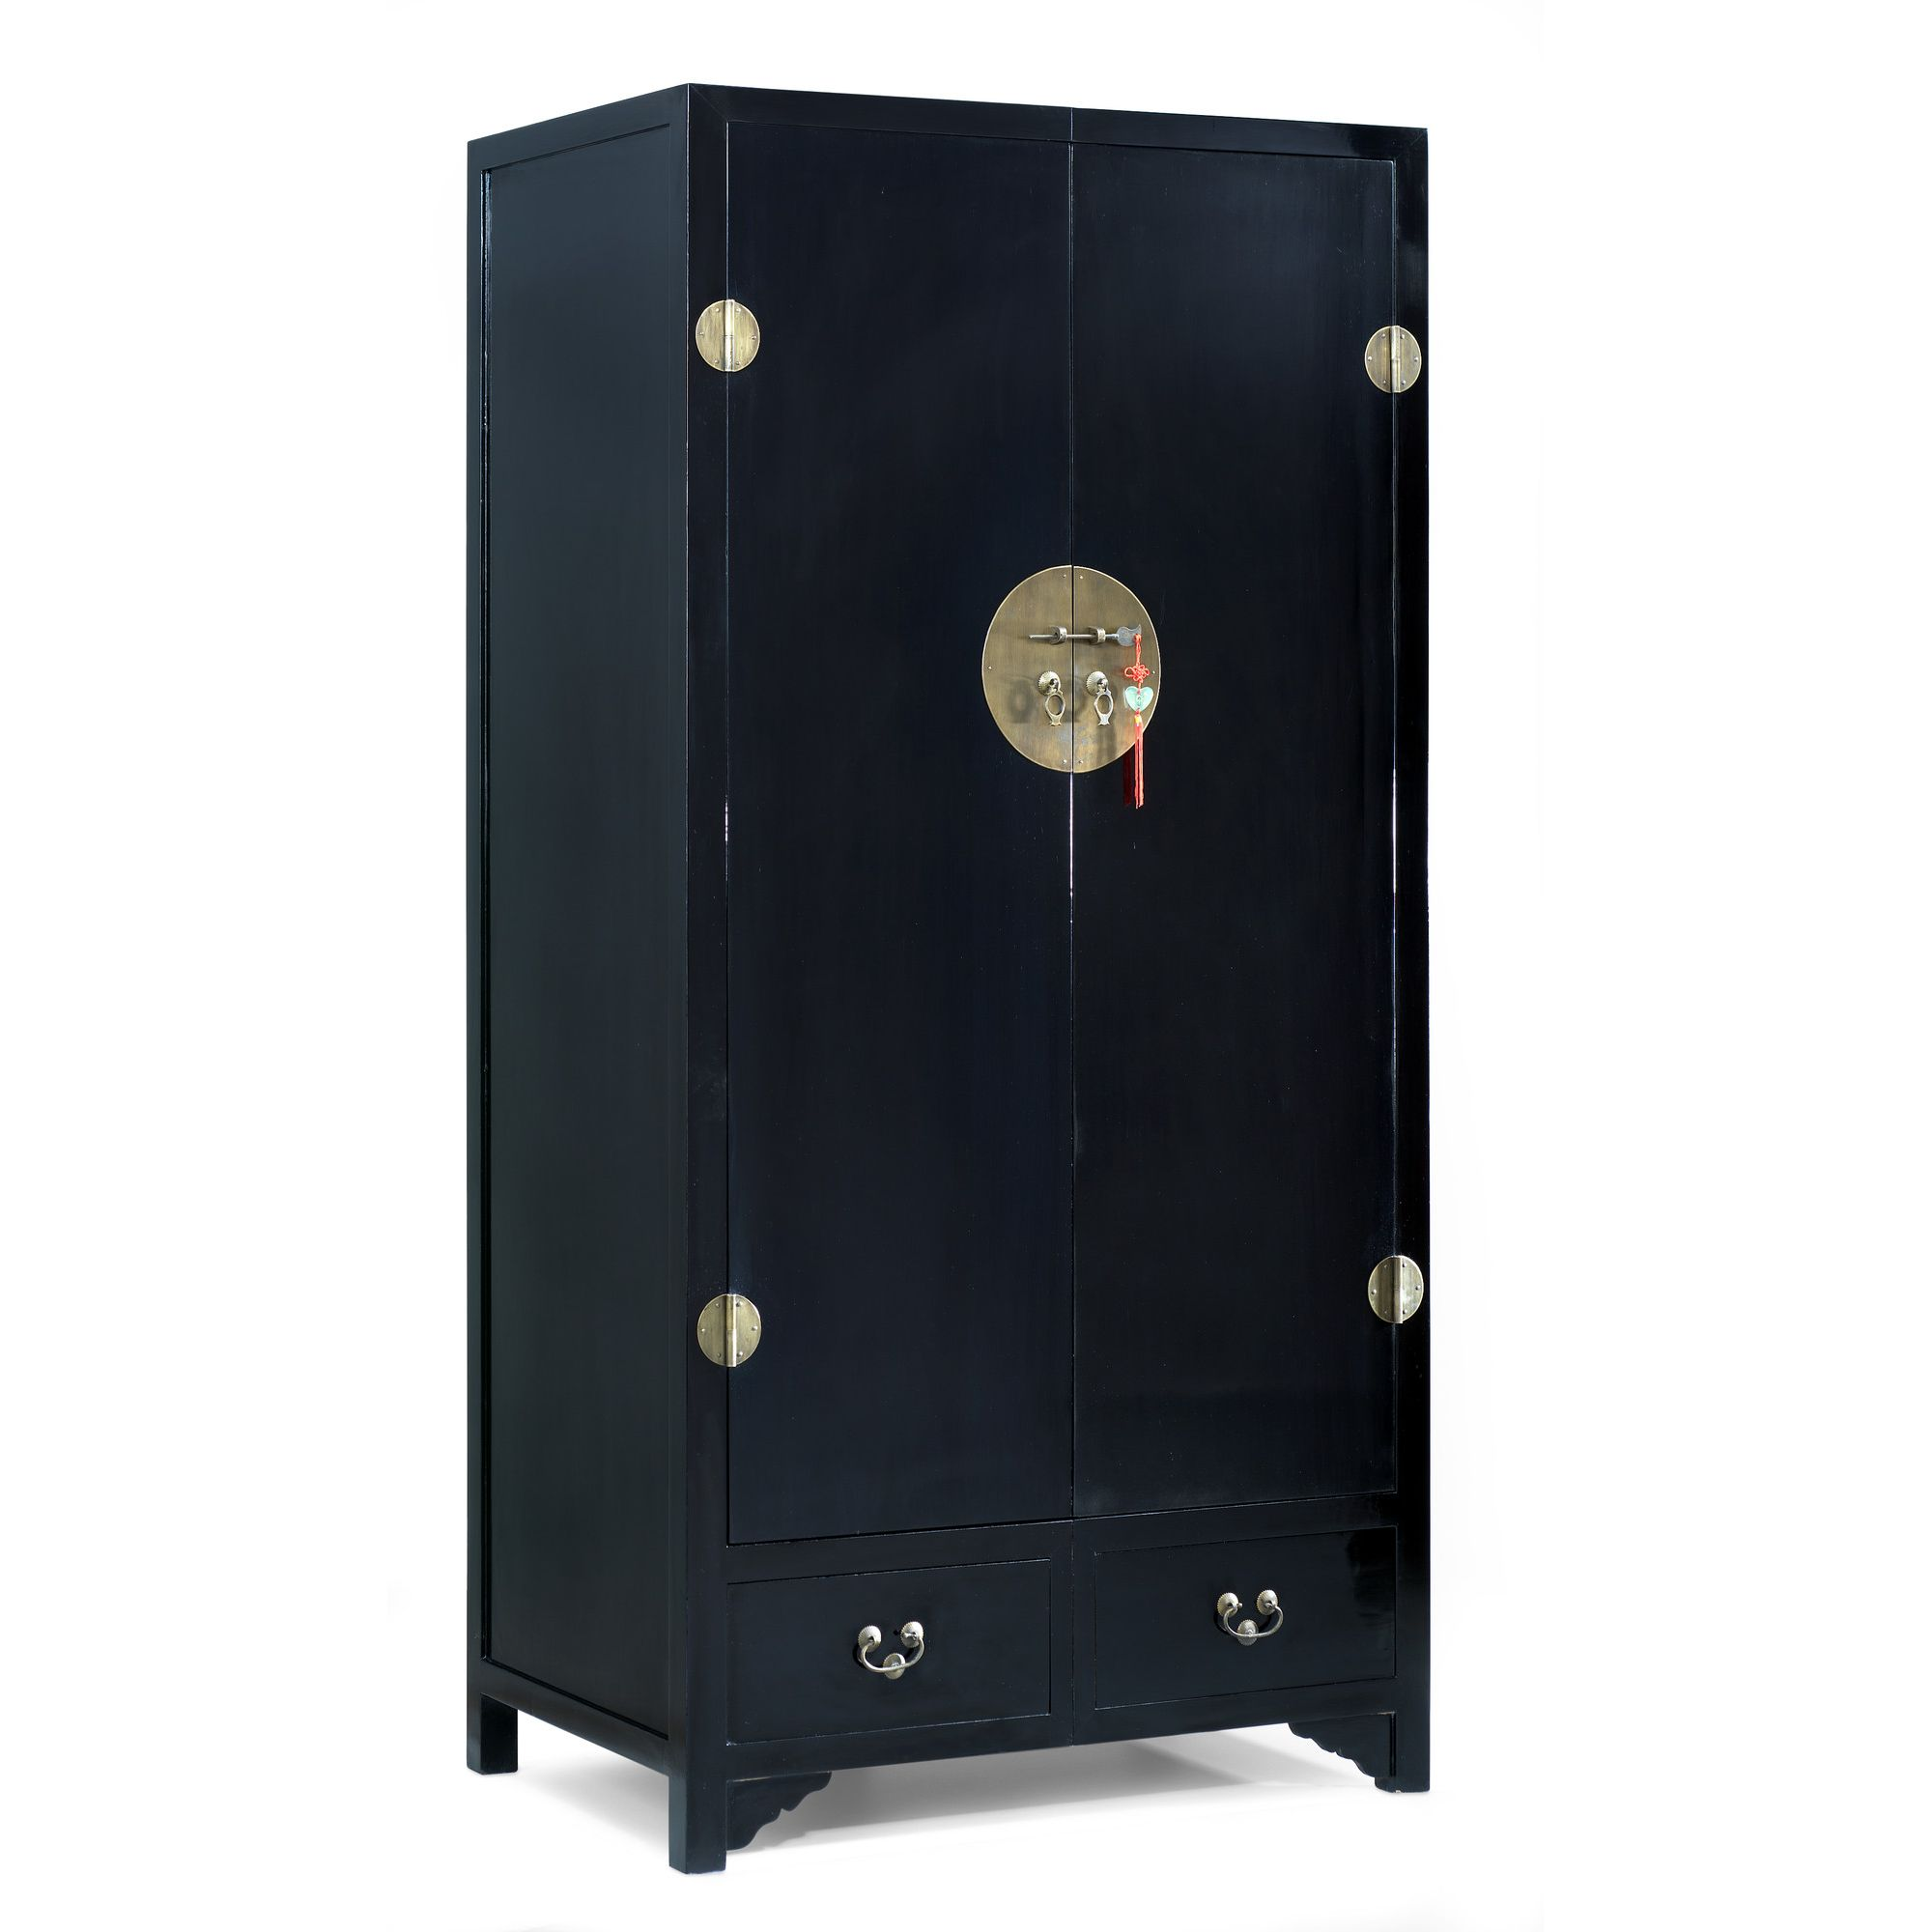 Shimu Chinese Classical Ming Wardrobe - Black Lacquer at Tesco Direct